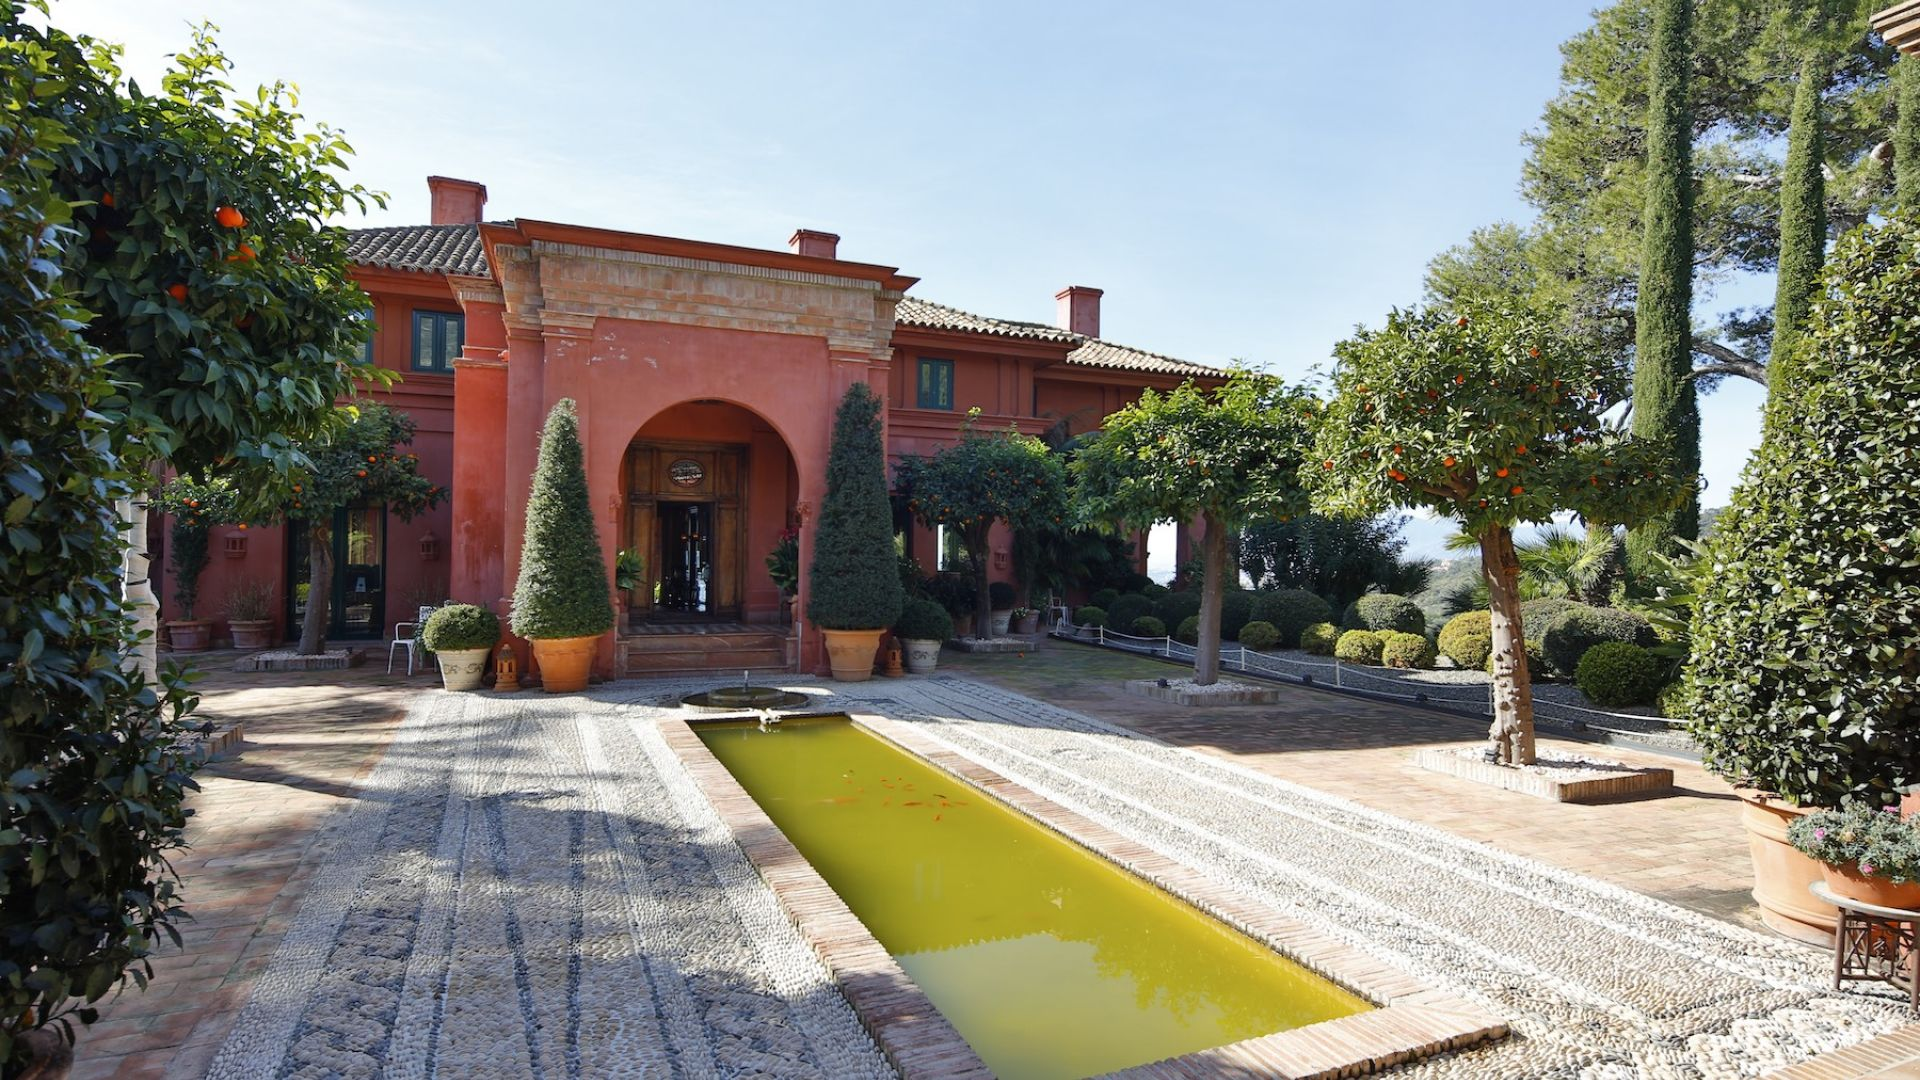 Single Family Home for Sale at Magnificent residence located in the hills above Marbella Marbella, Costa Del Sol 29600 Spain